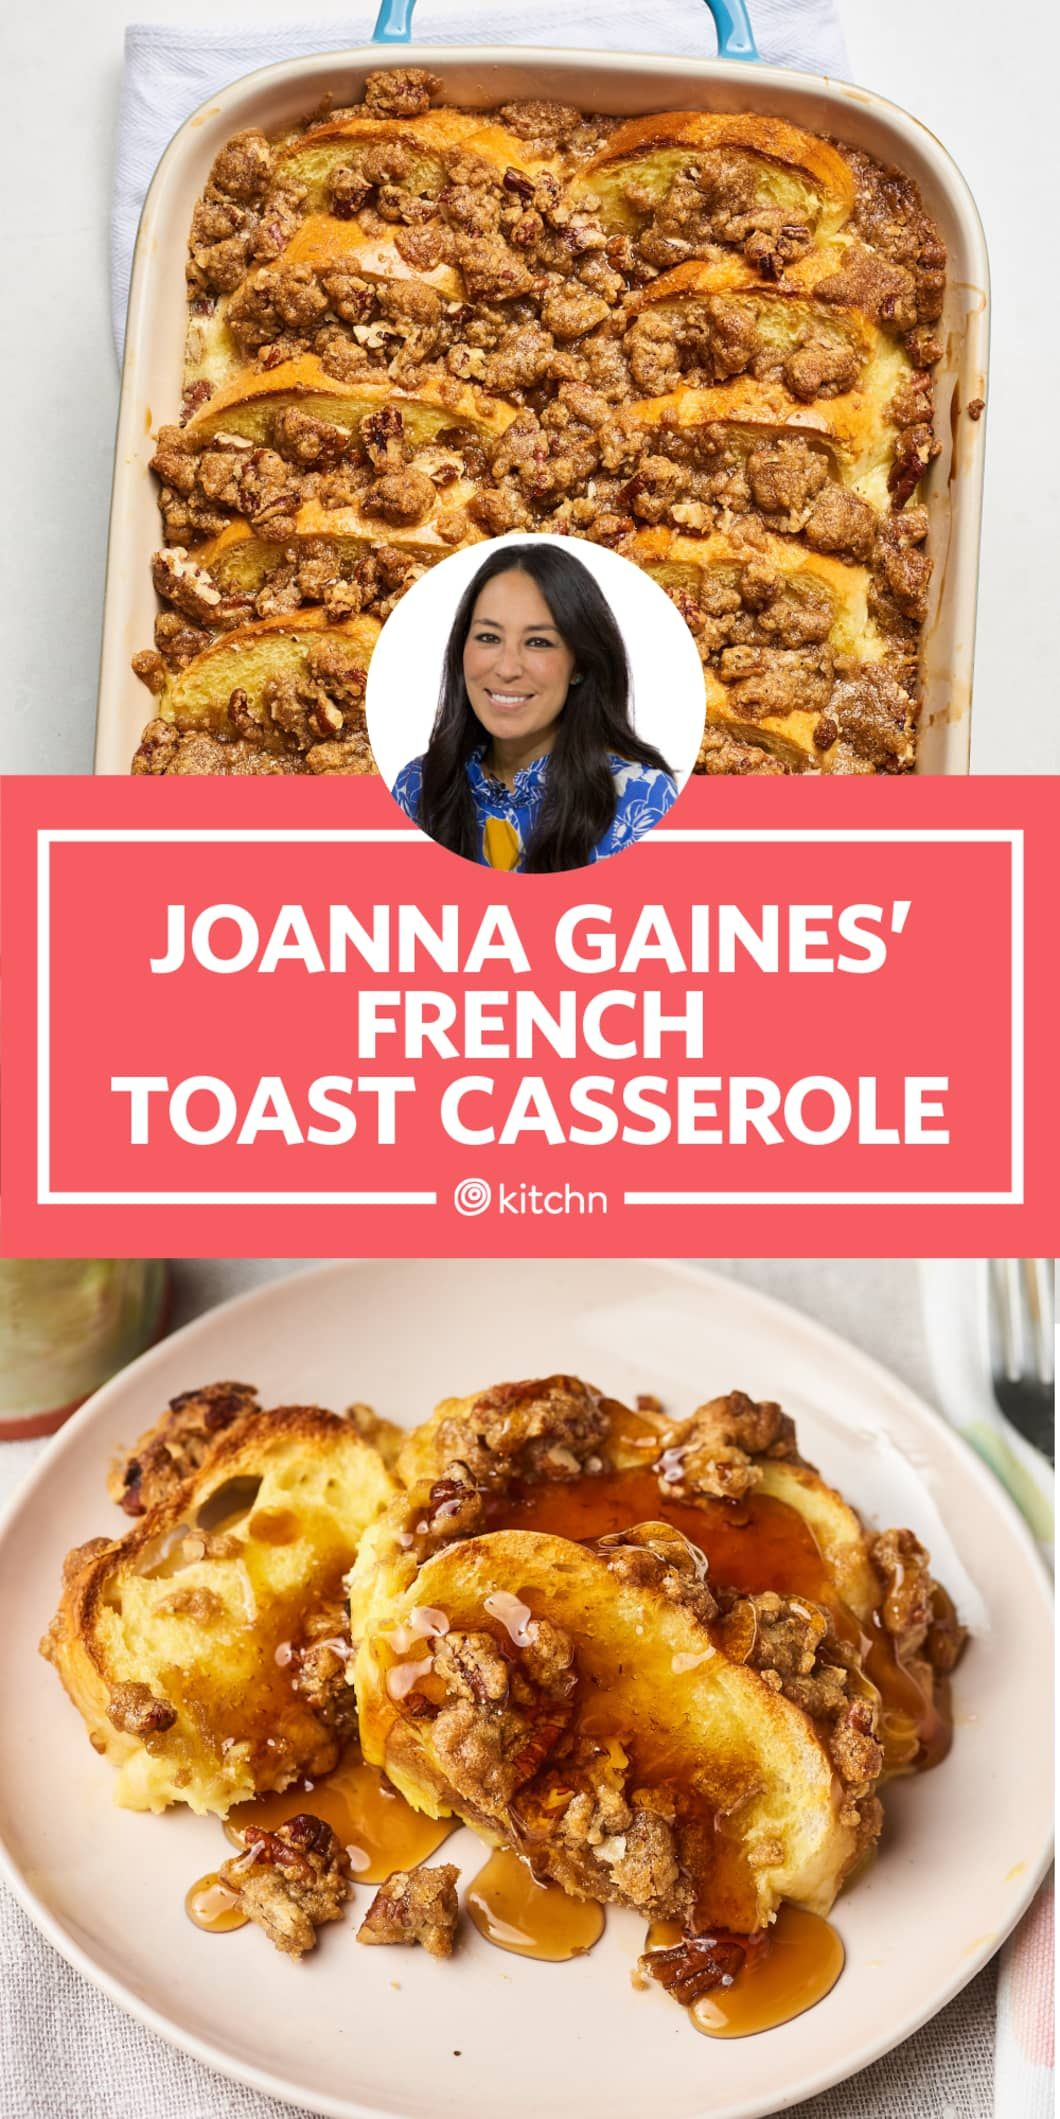 The Best Part of Joanna Gaines' Overnight French Toast Is the Topping